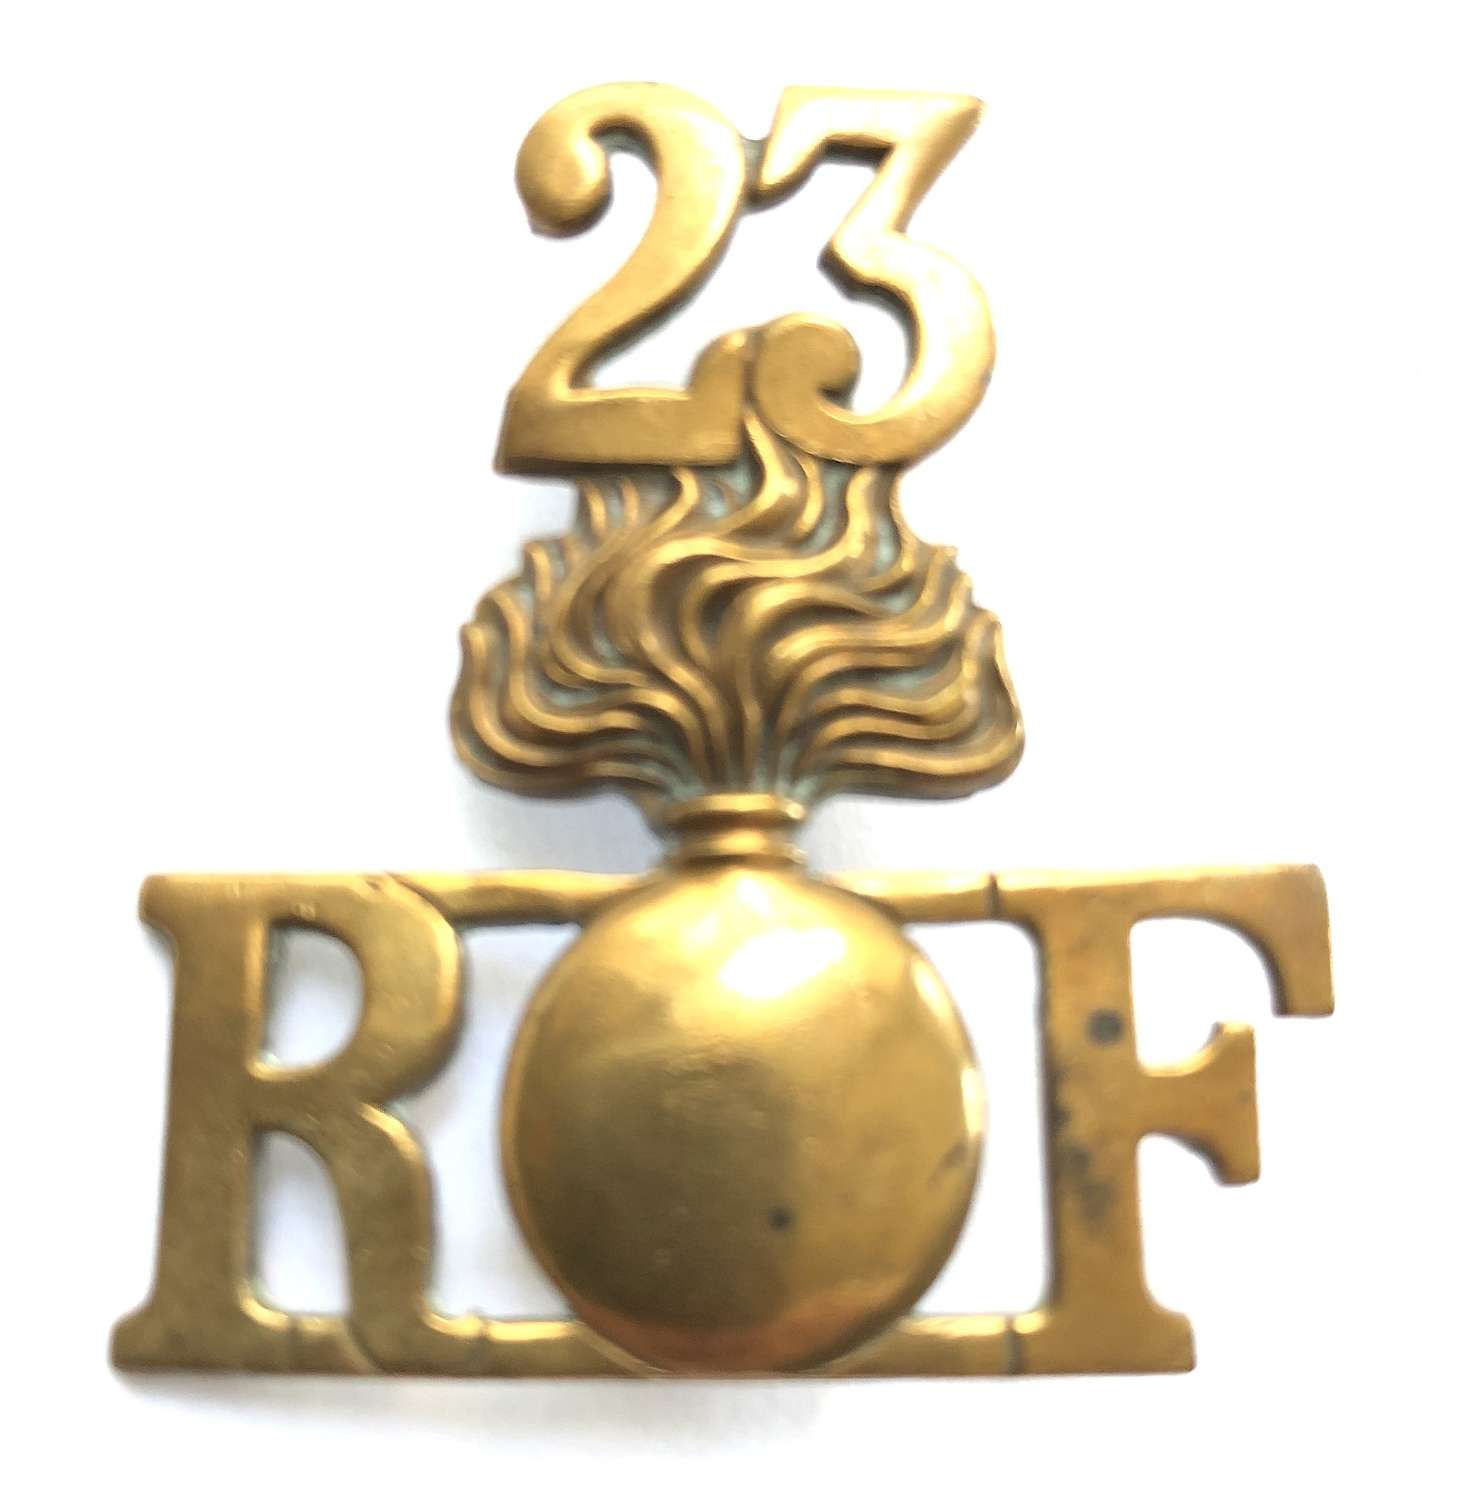 23 / R grenade F 'Kitchener's' Royal Fusiliers WW1 shoulder title